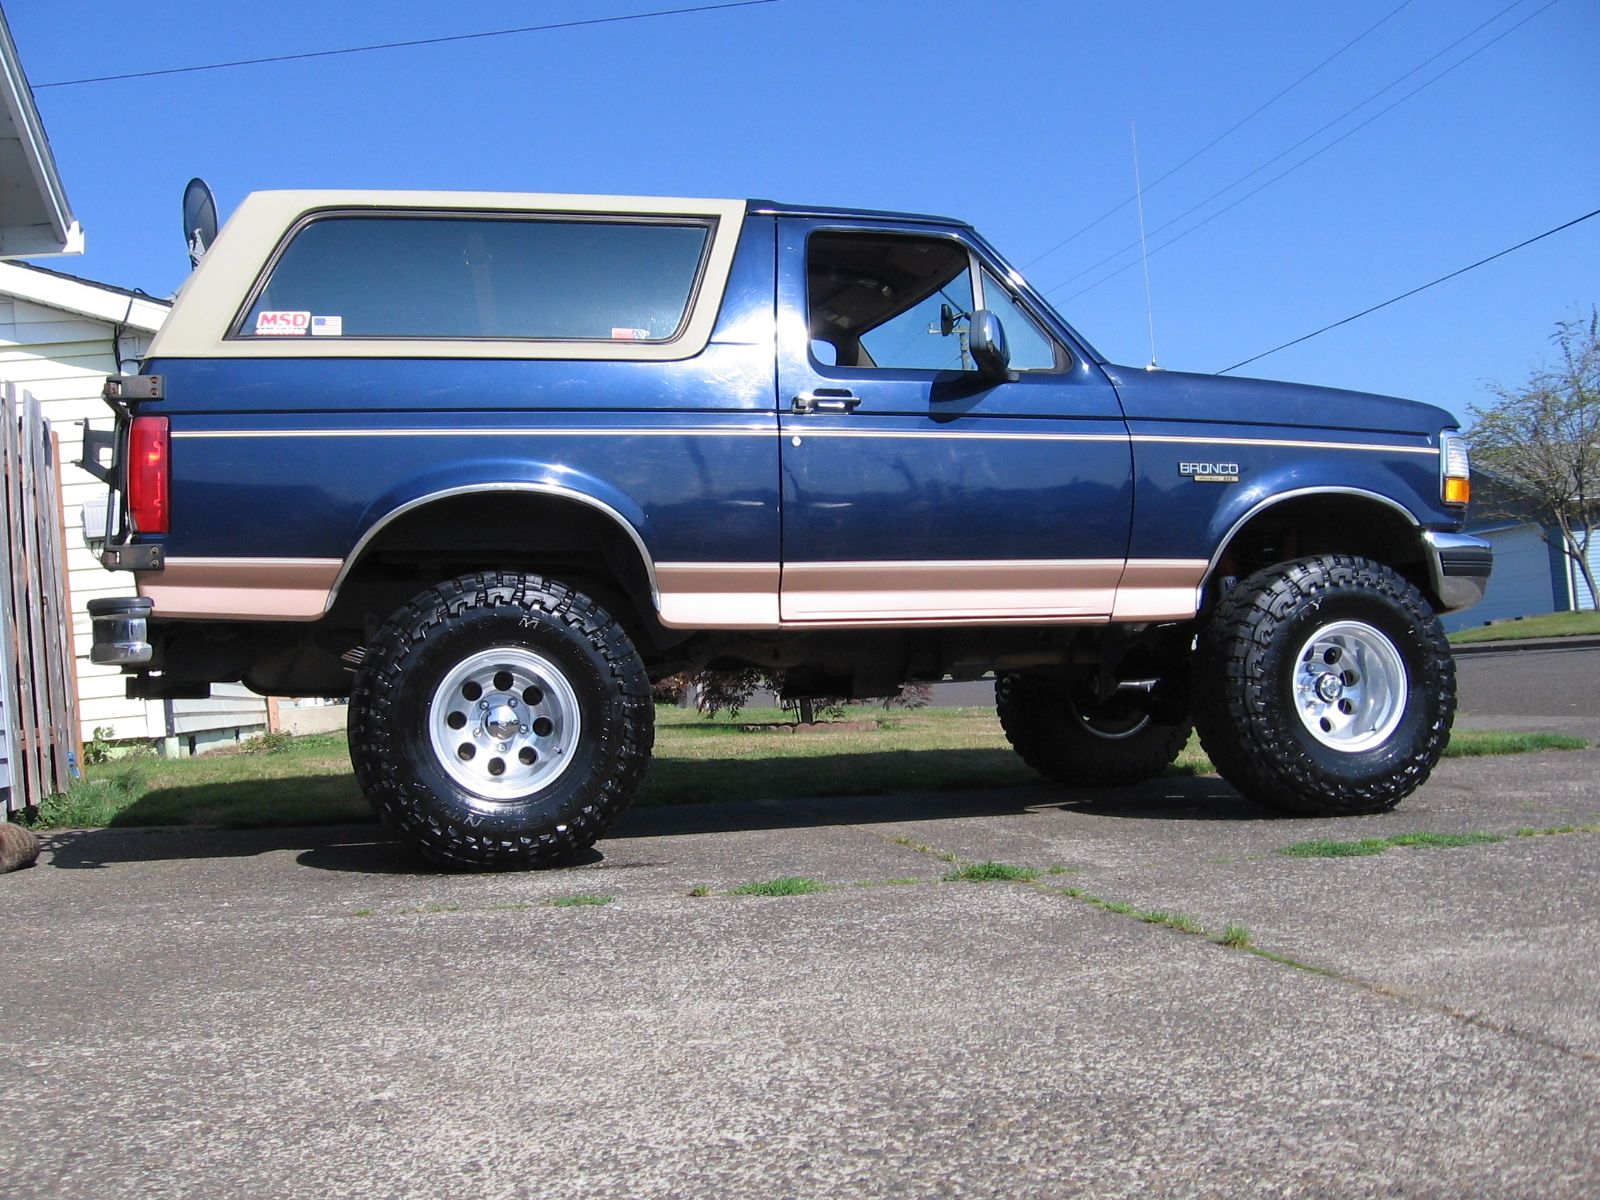 Diesel ford bronco for sale - Best 25 1995 Ford Bronco Ideas On Pinterest Ford Bronco Lifted Ford Bronco 2015 And Oj Bronco